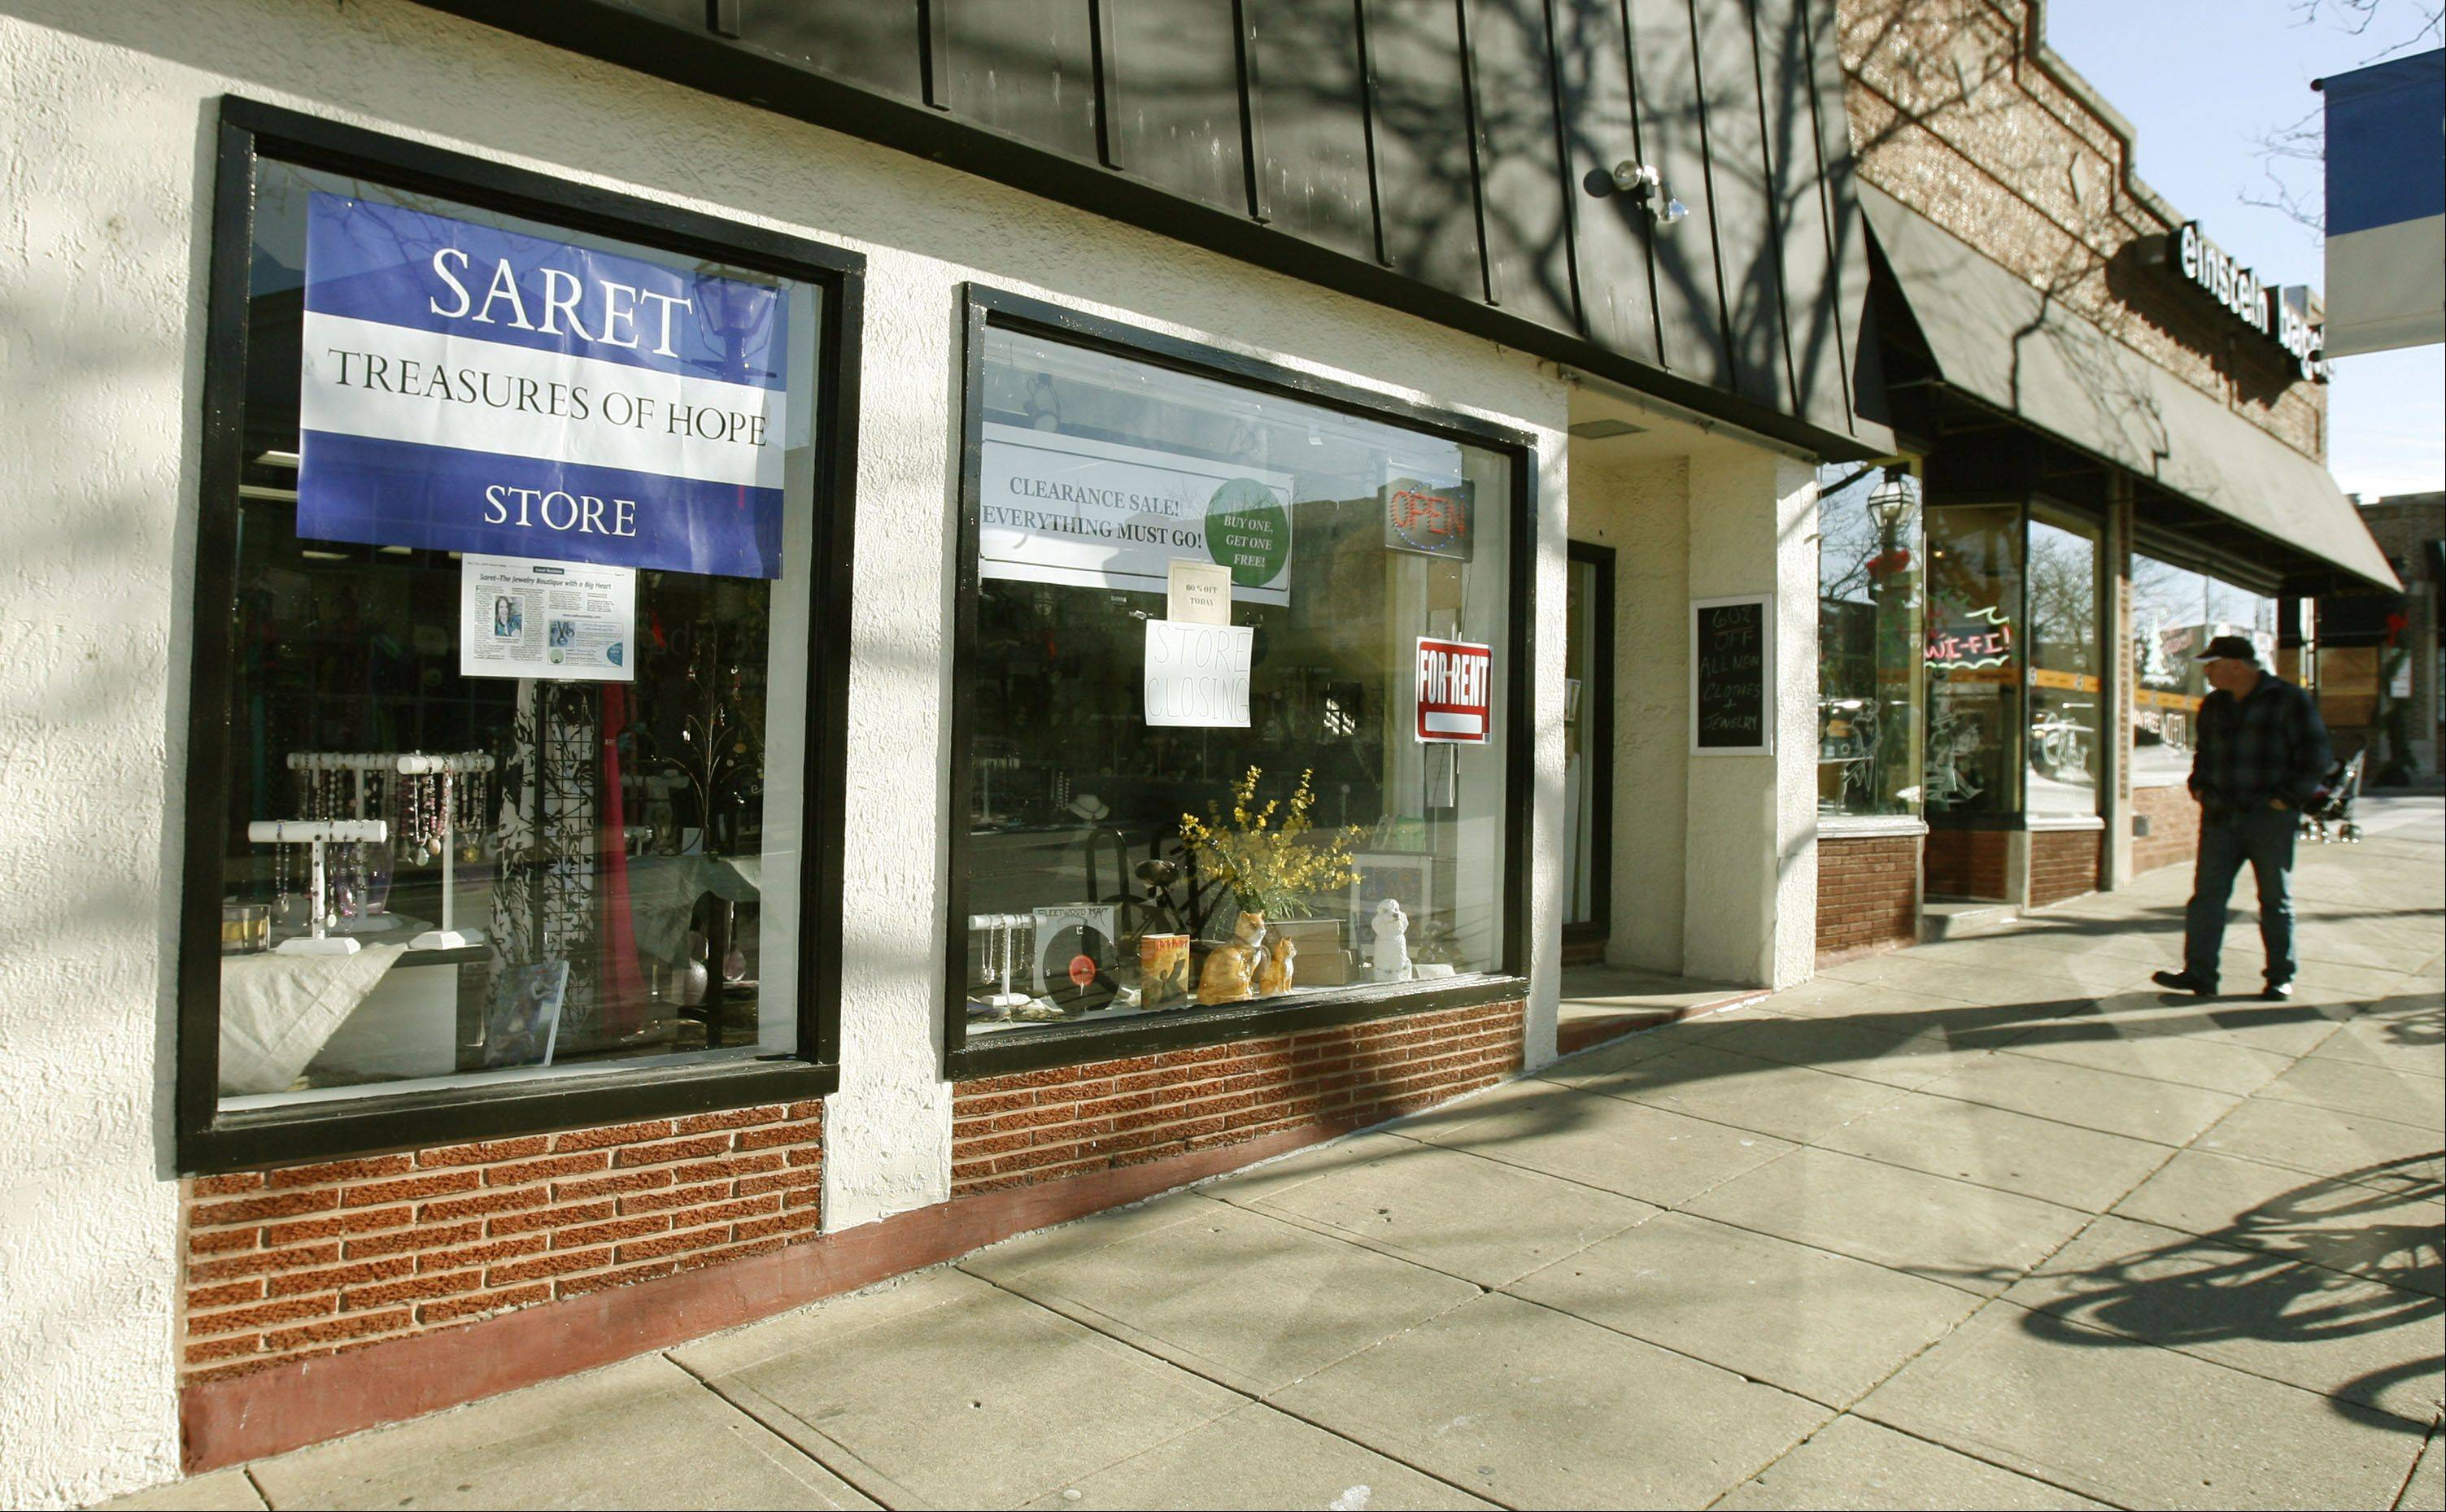 SARET Treasures of Hope, a boutique in downtown Glen Ellyn, will close its doors for the final time this weekend due to a decline in sales. Proceeds from the store had gone to support the less fortunate.